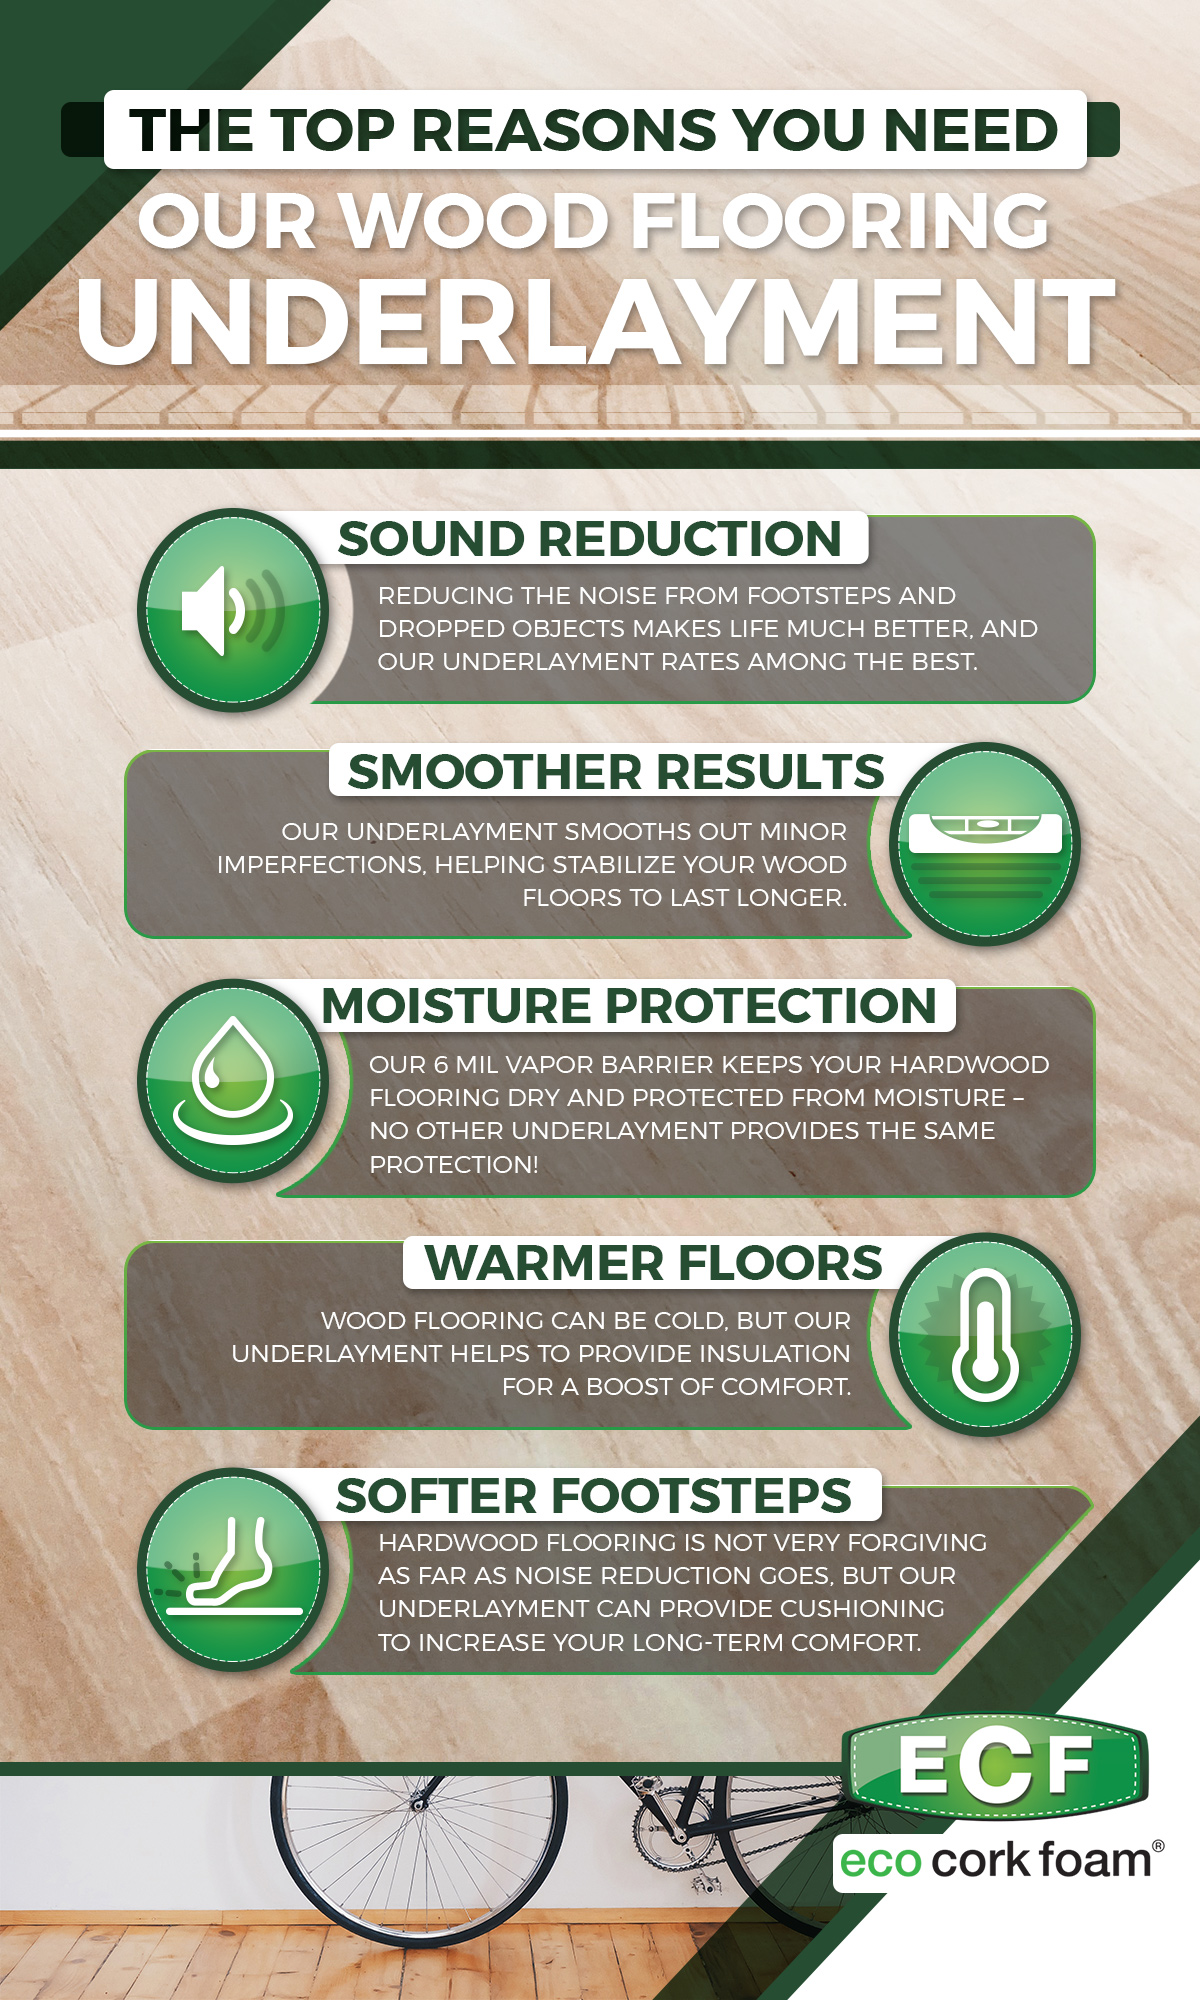 Hardwood Flooring Underlayment - Learn About The Value Of